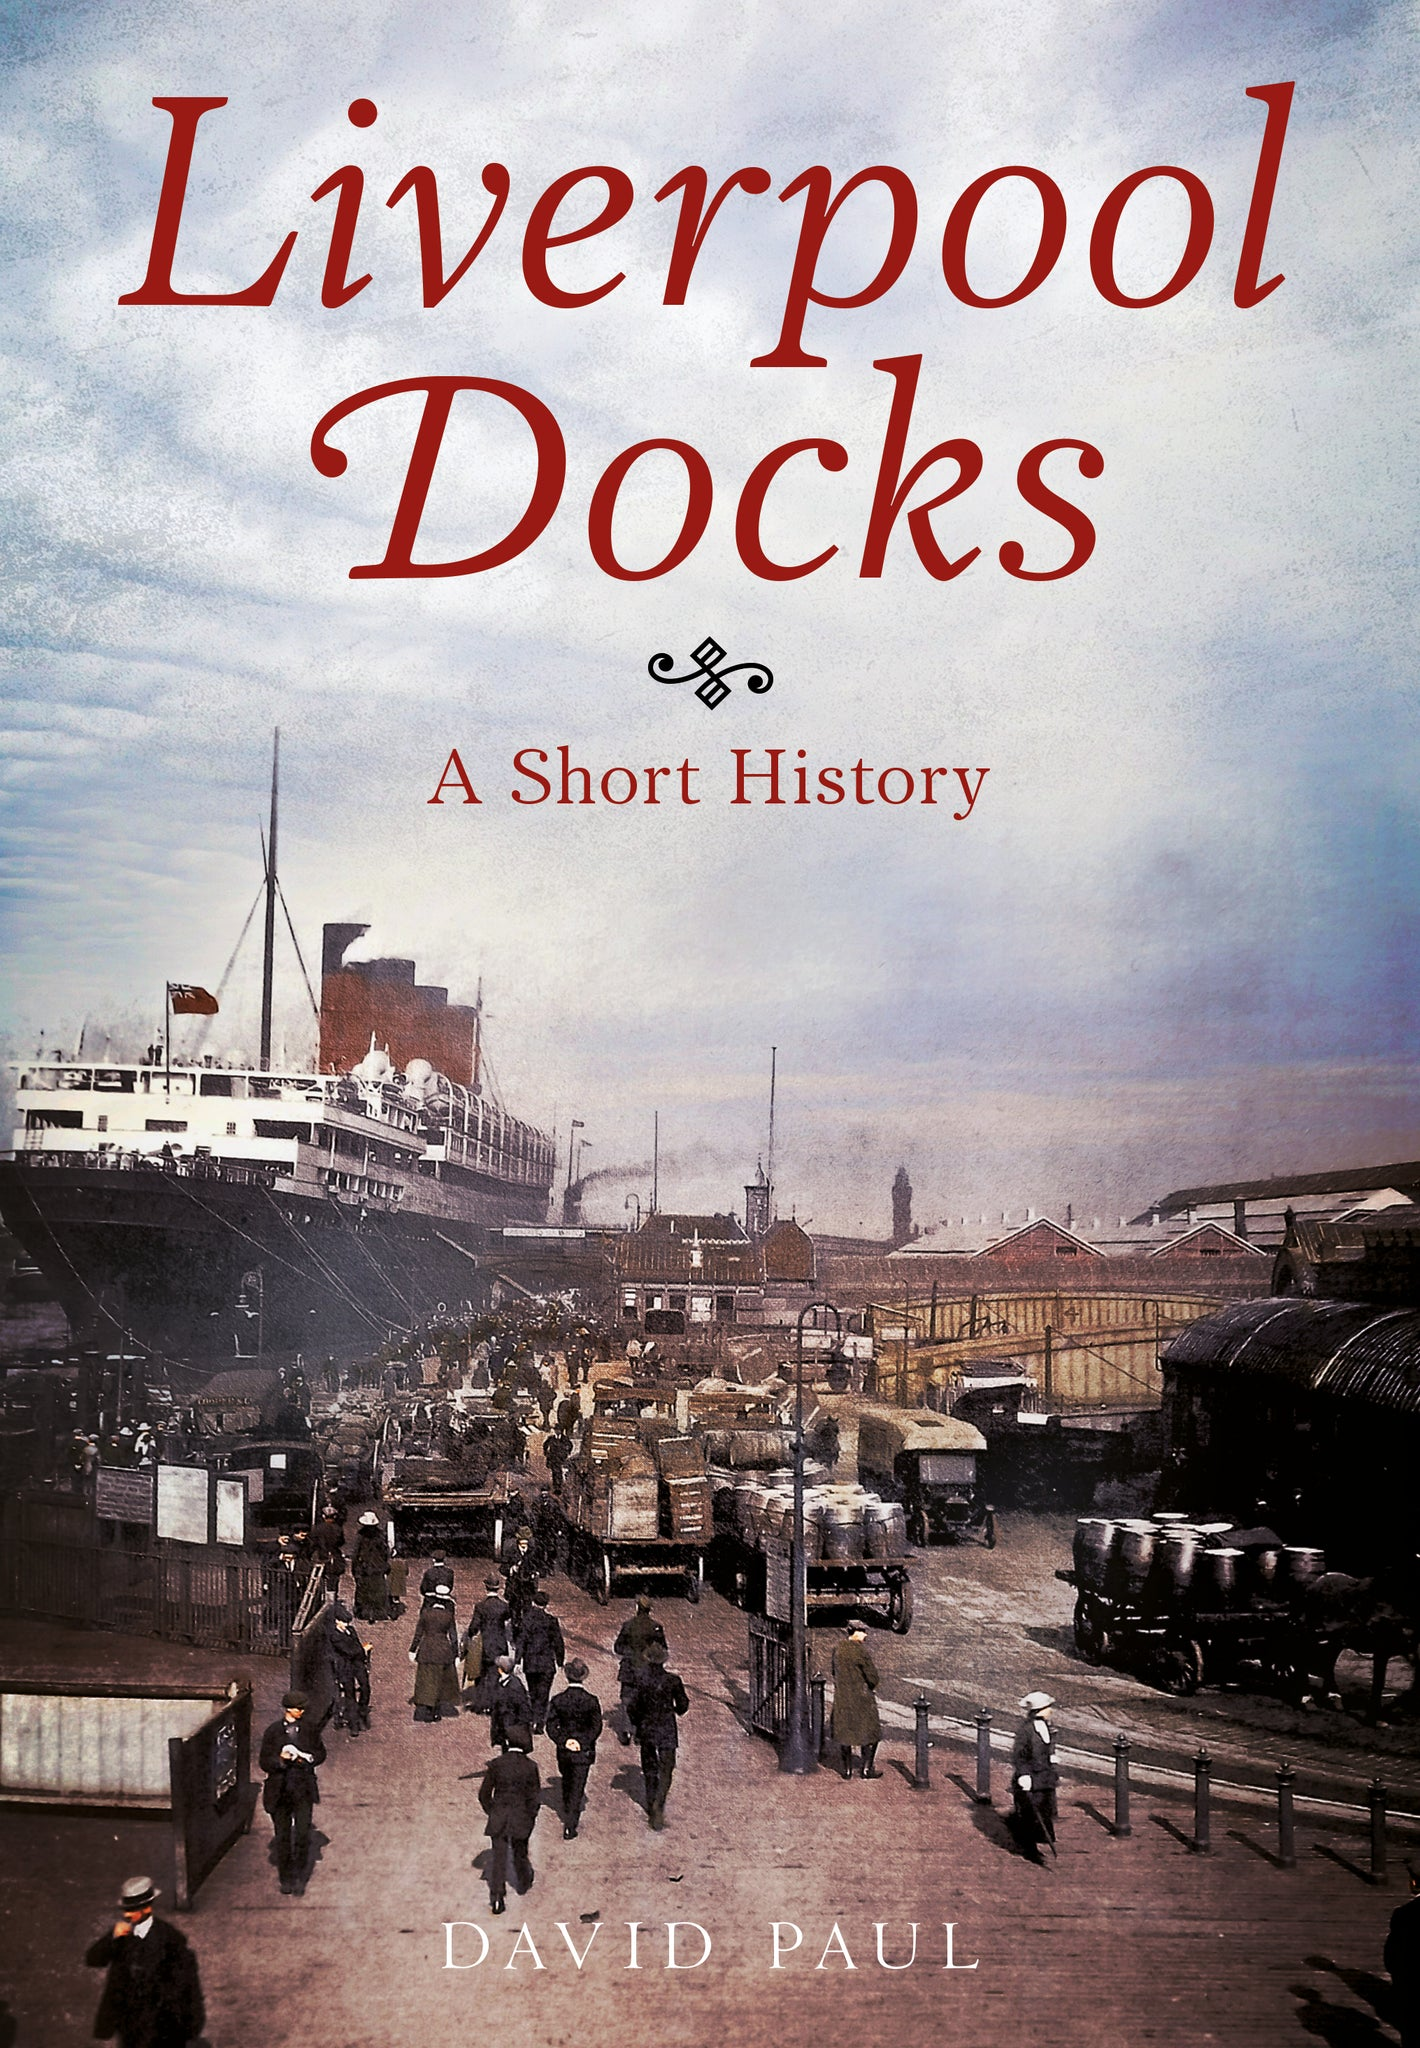 Liverpool Docks: A Short History